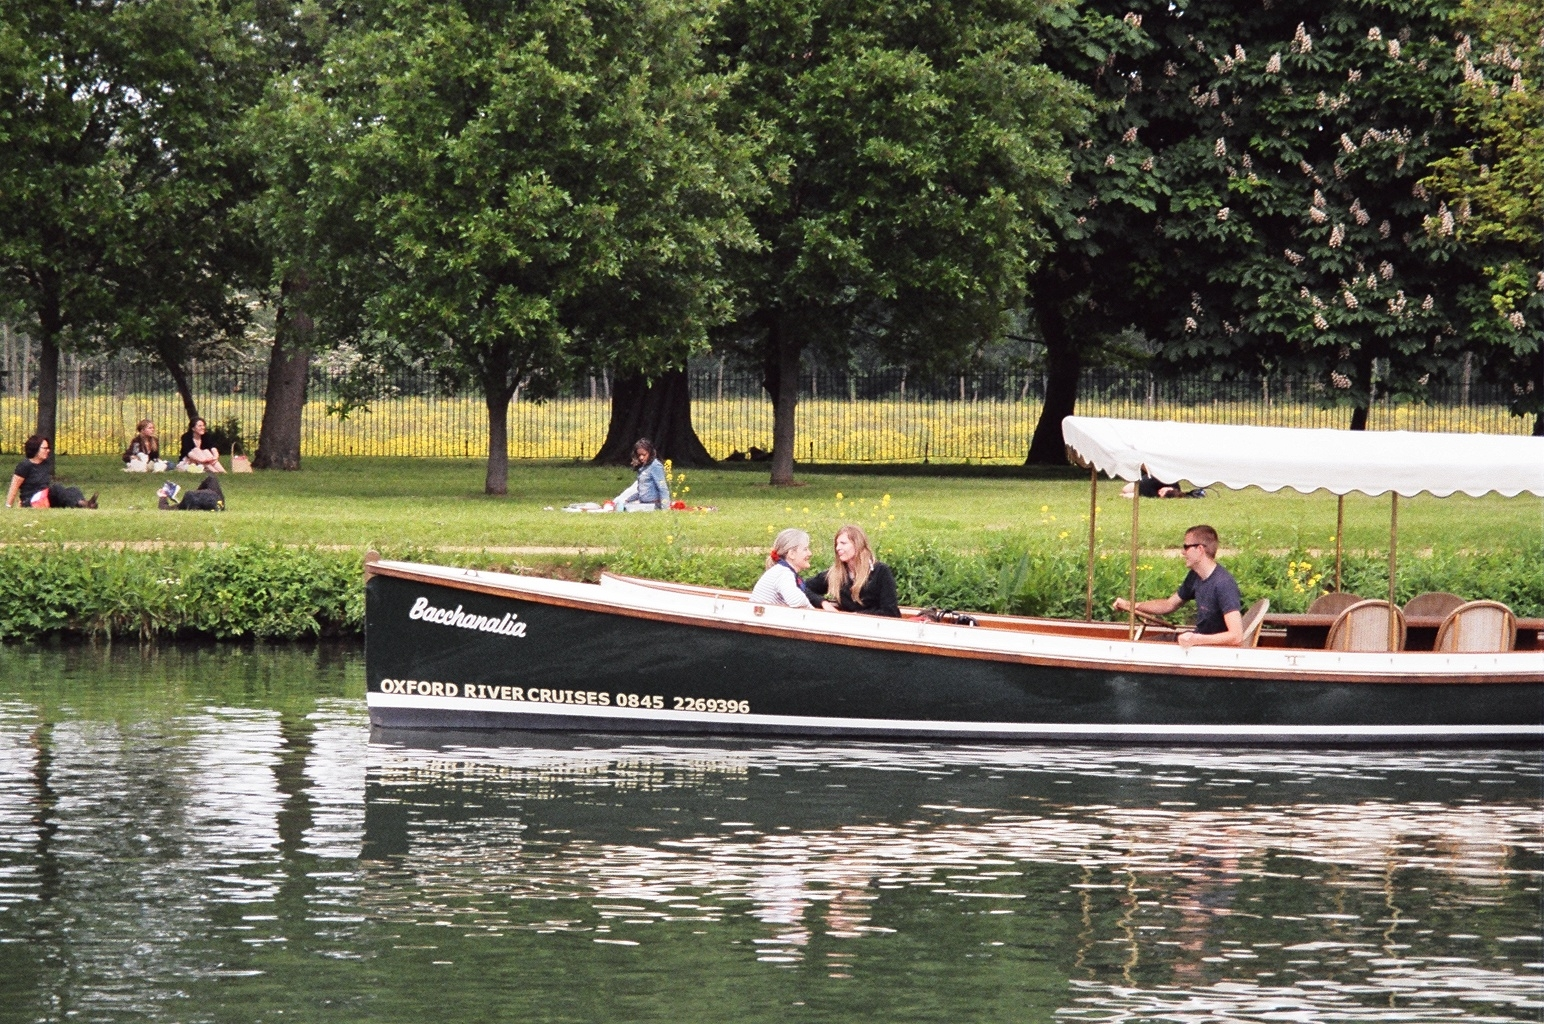 Guided Tours of Oxford's Rivers and Boat Trips